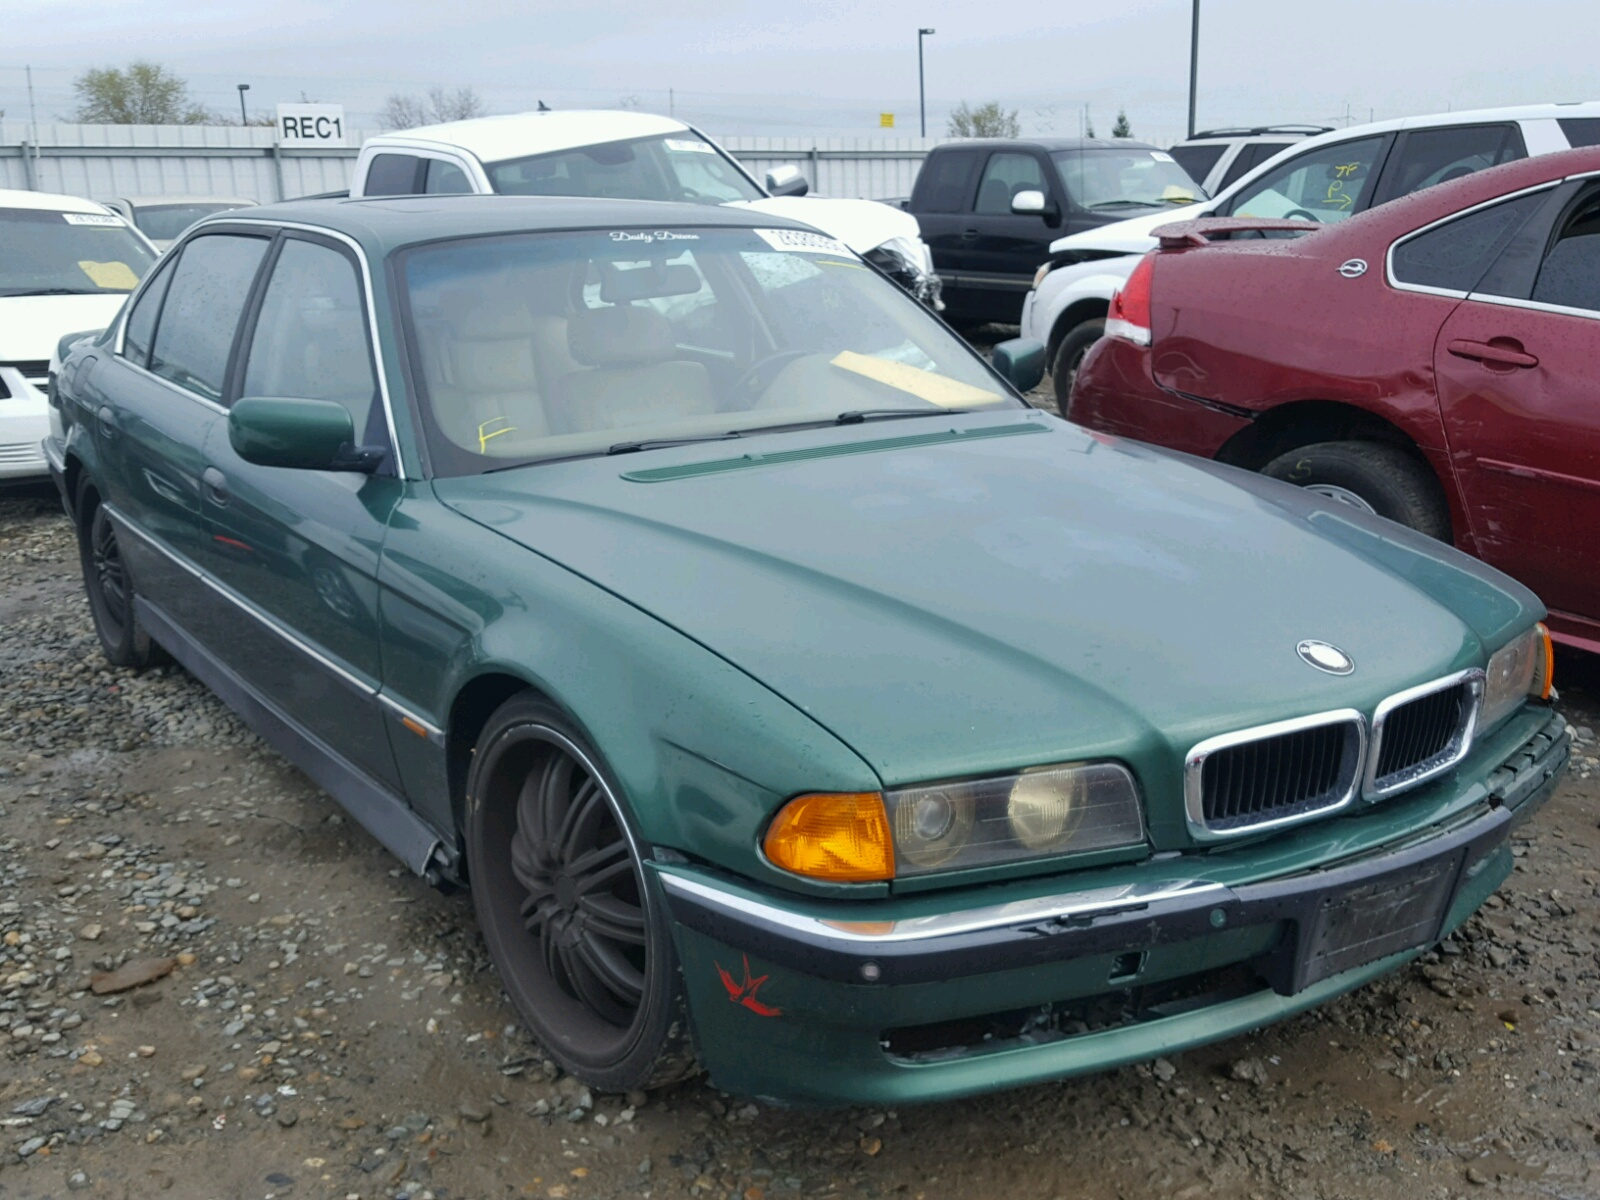 thrifty bmw inventory sacramento research sales used car cars and buy